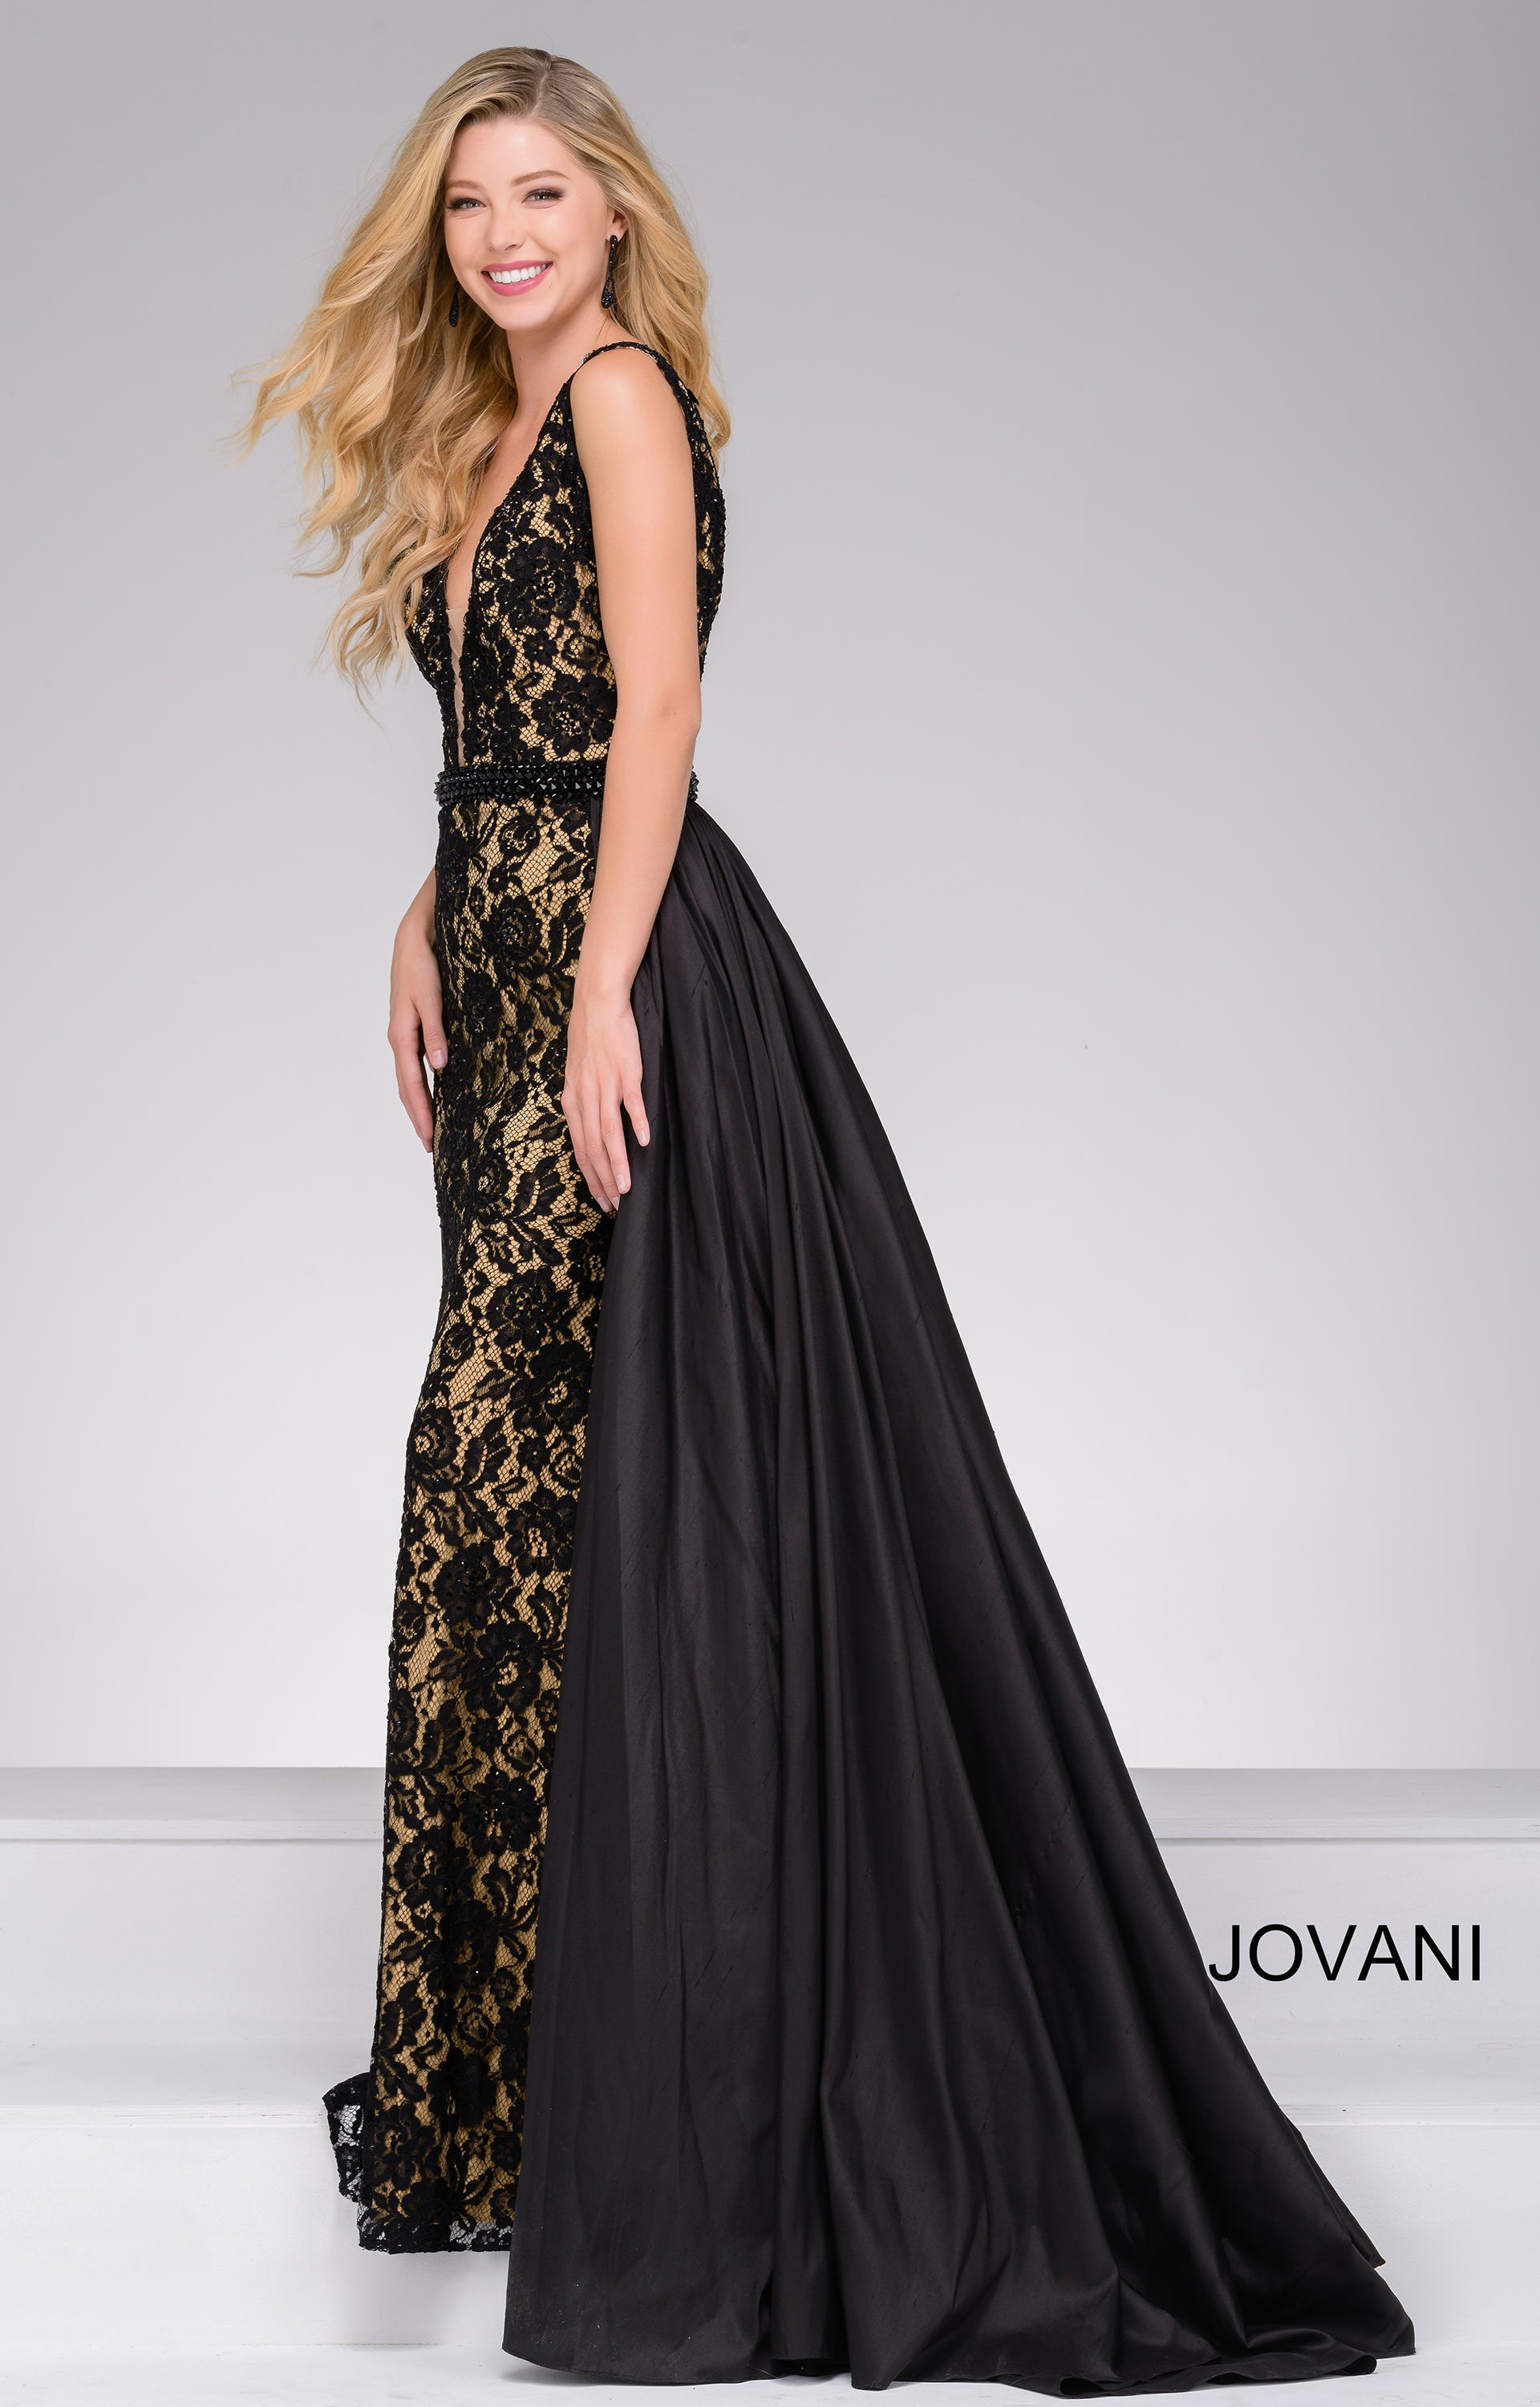 Jovani 49639 - Cape Train with Lace Overlay Prom Dress